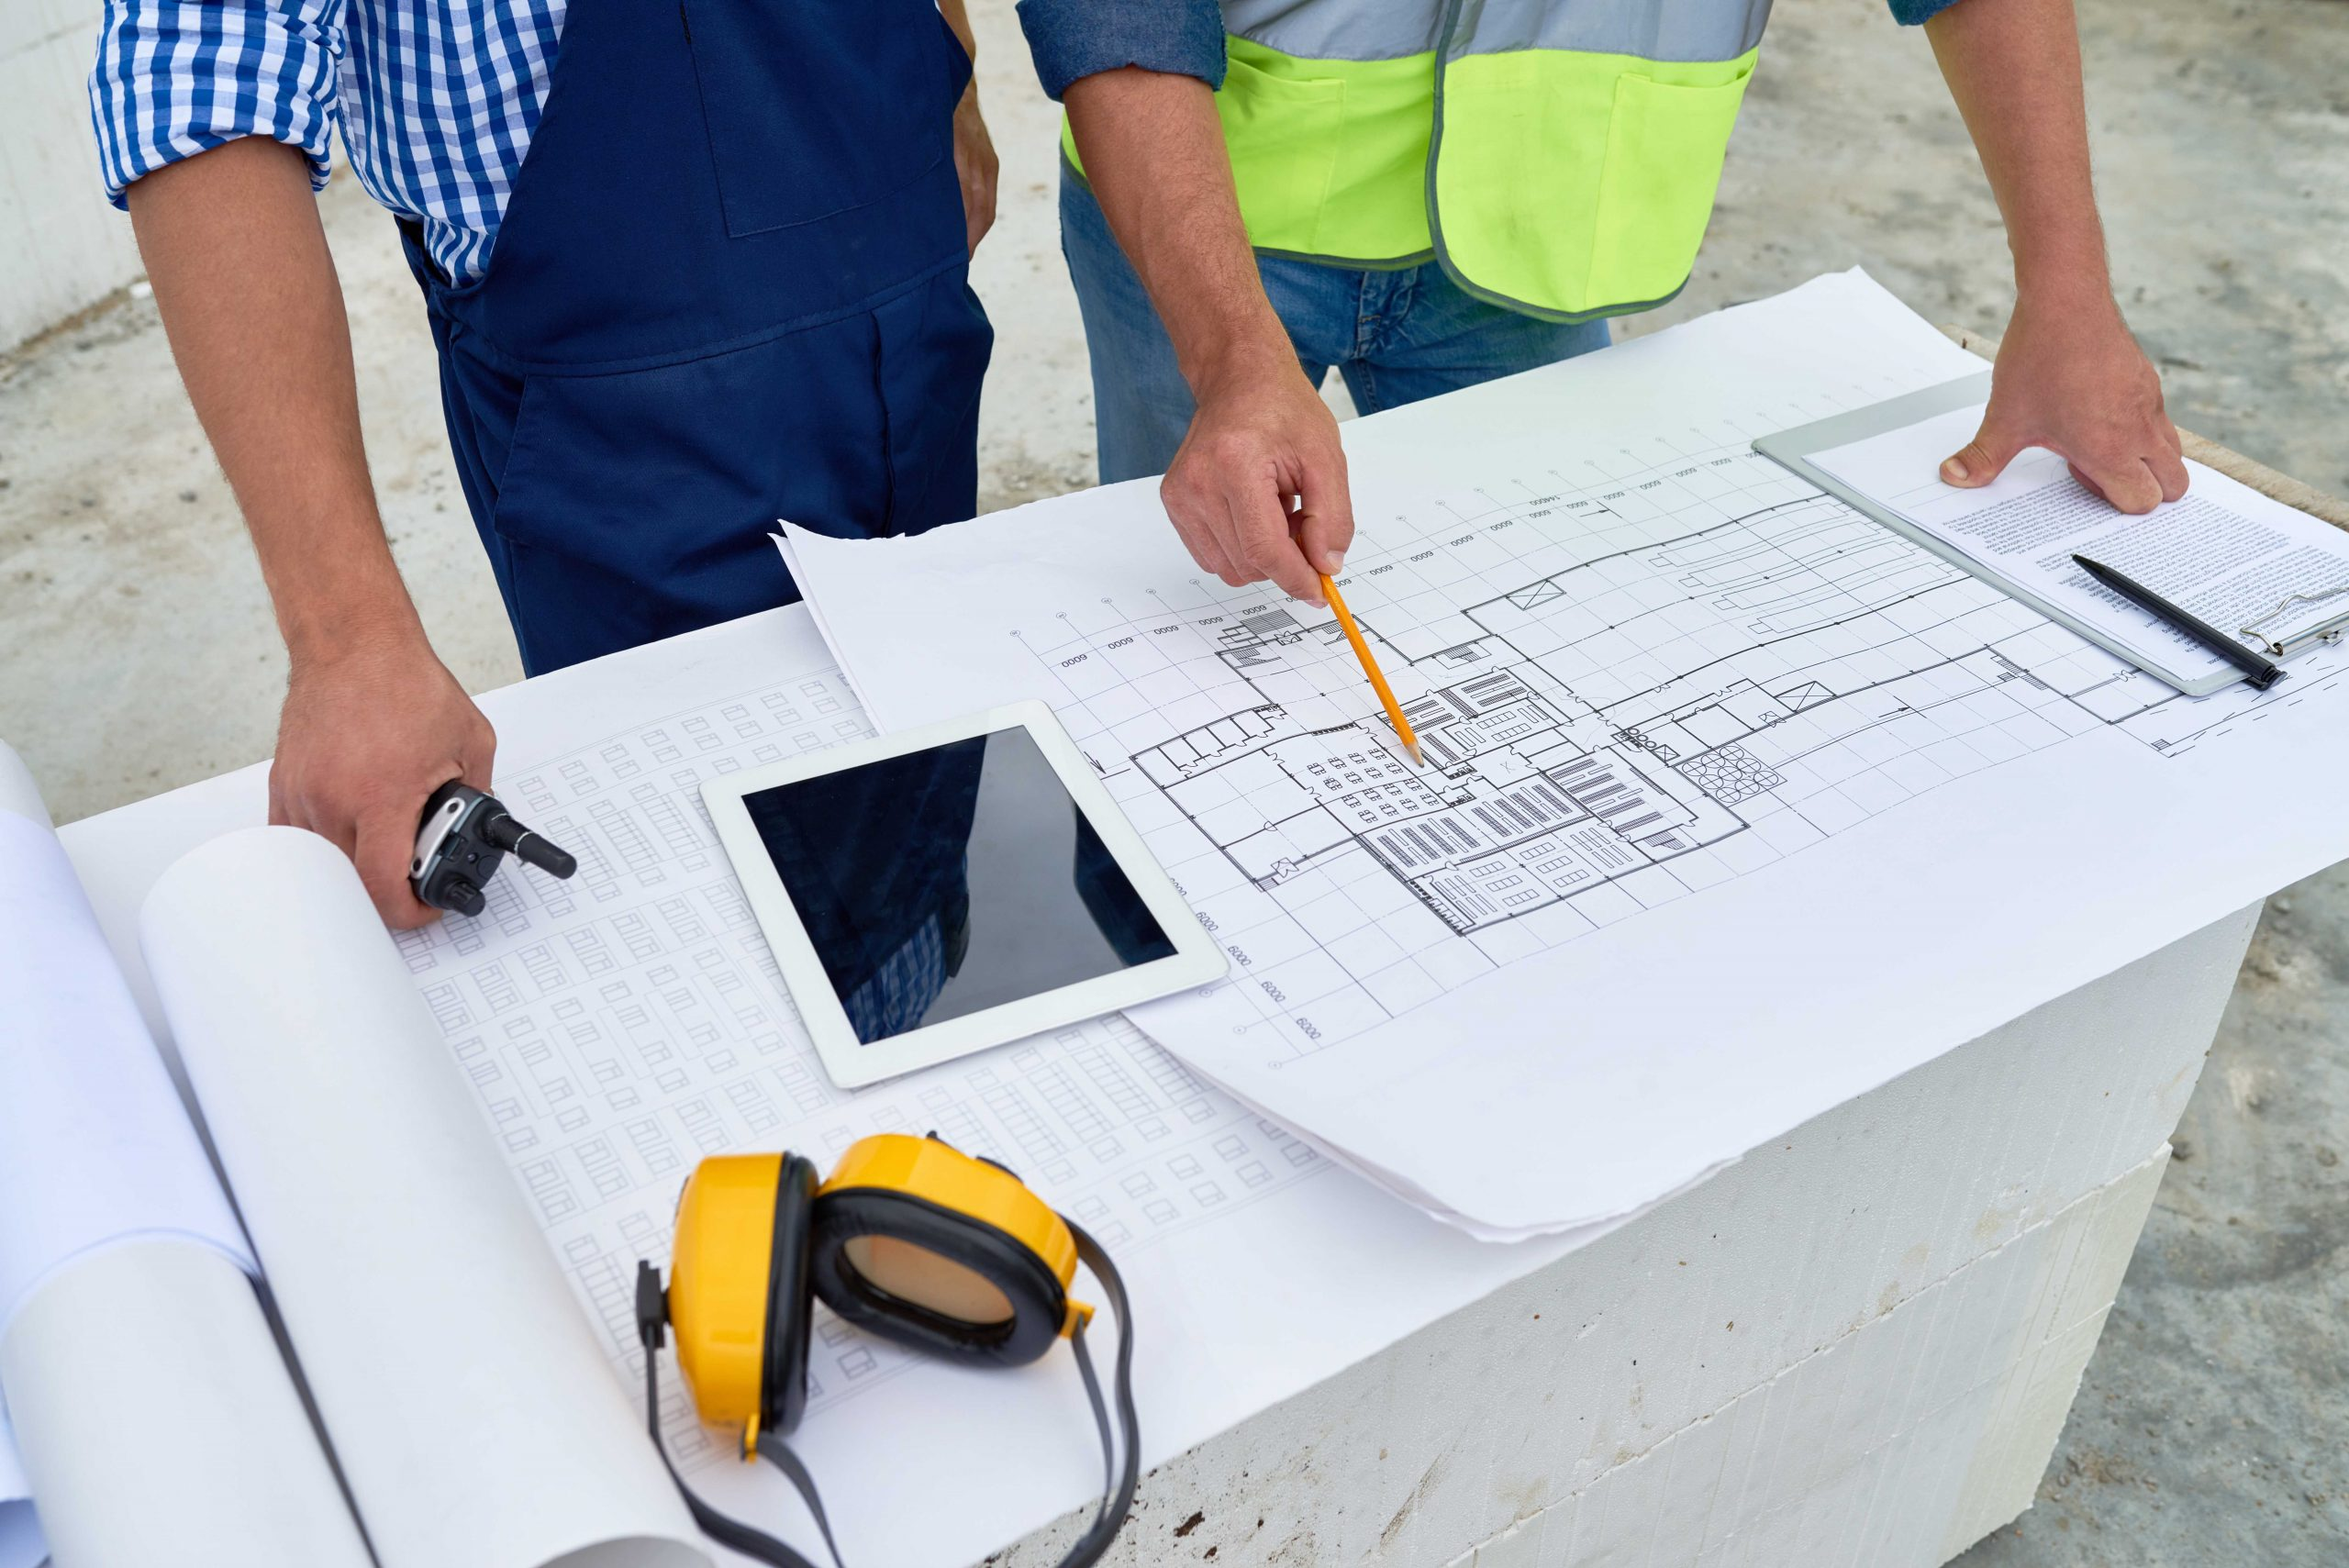 A project manager and construction worker looking over building plans.